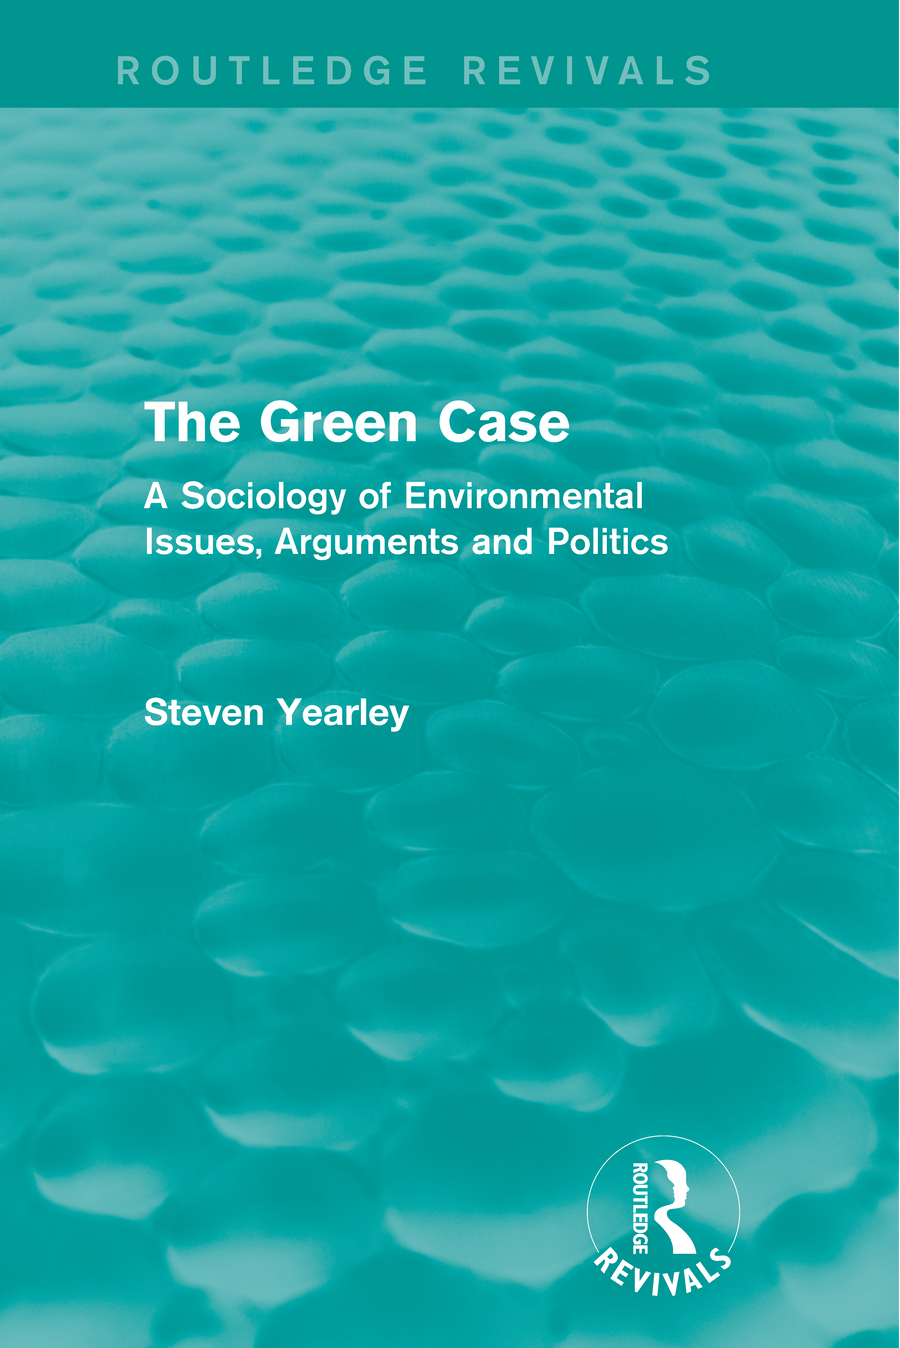 The Green Case (Routledge Revivals) A Sociology of Environmental Issues, Arguments and Politics